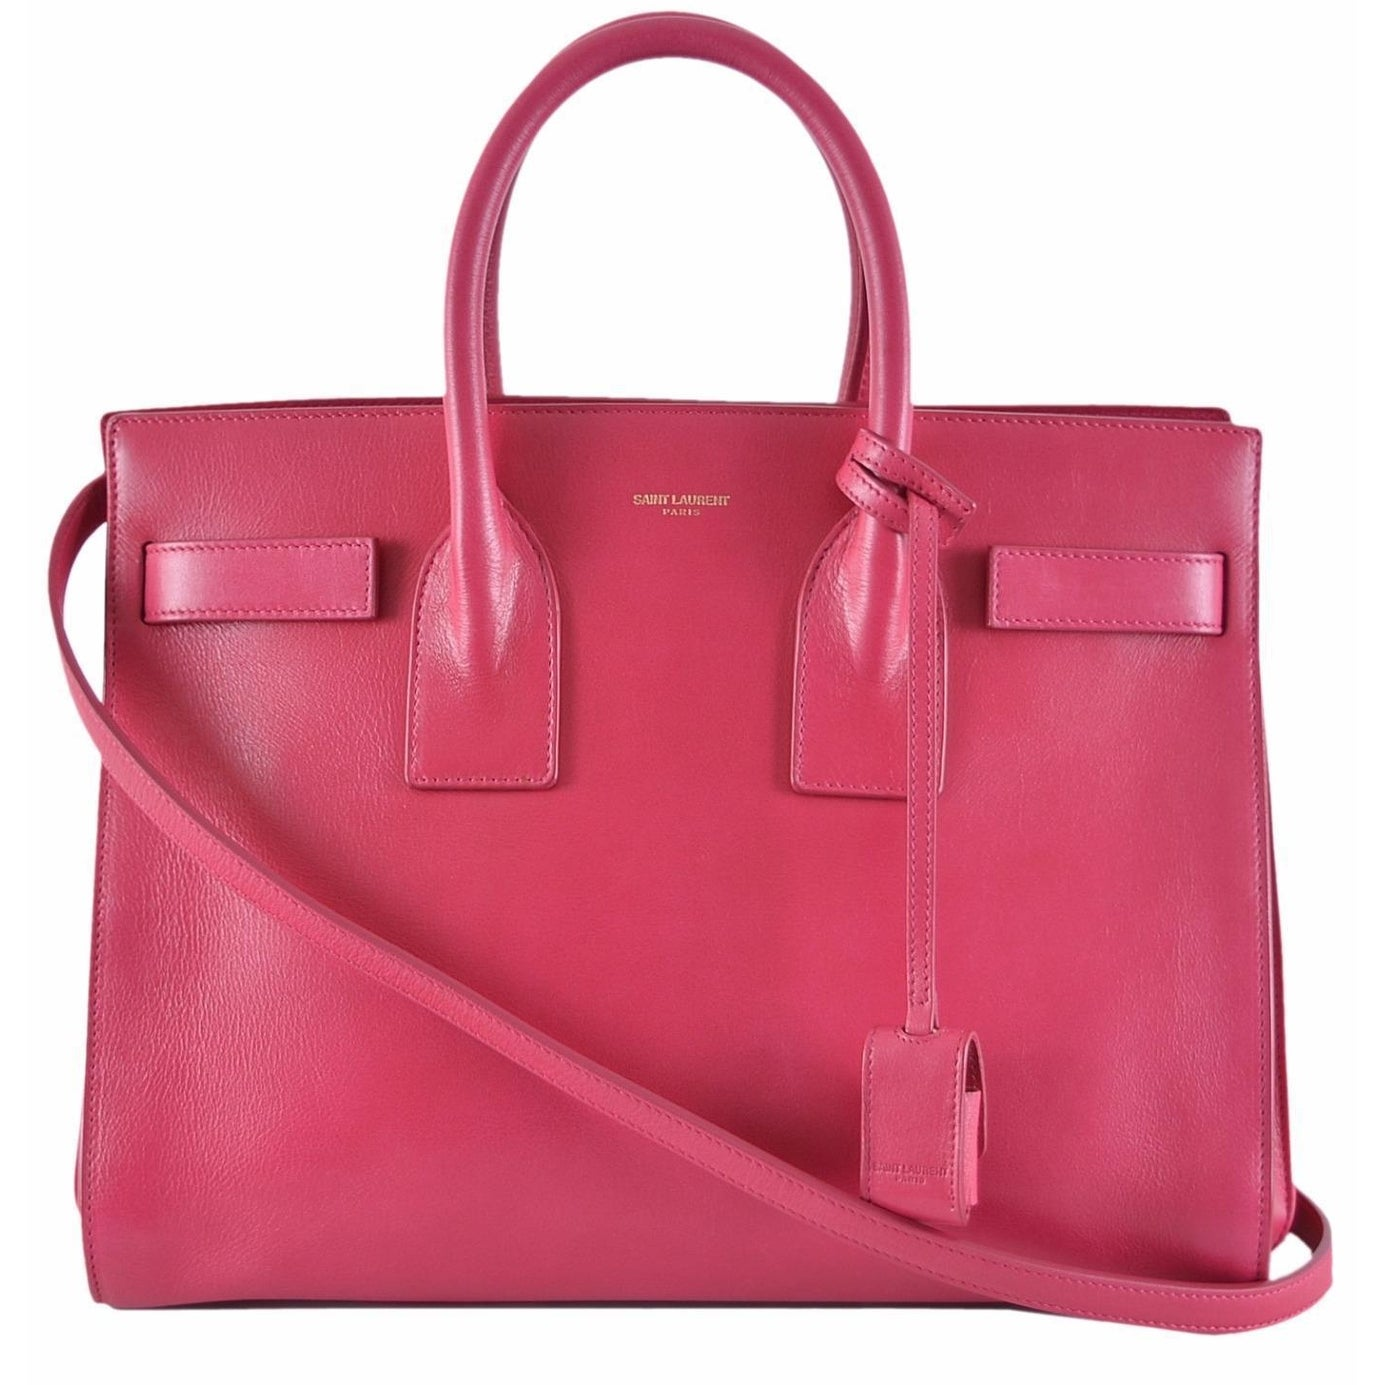 Shop Yves Saint Laurent YSL Pink Leather Sac de Jour Small Handbag Purse  W Strap - On Sale - Free Shipping Today - Overstock - 12057558 fc6c8d686a90b